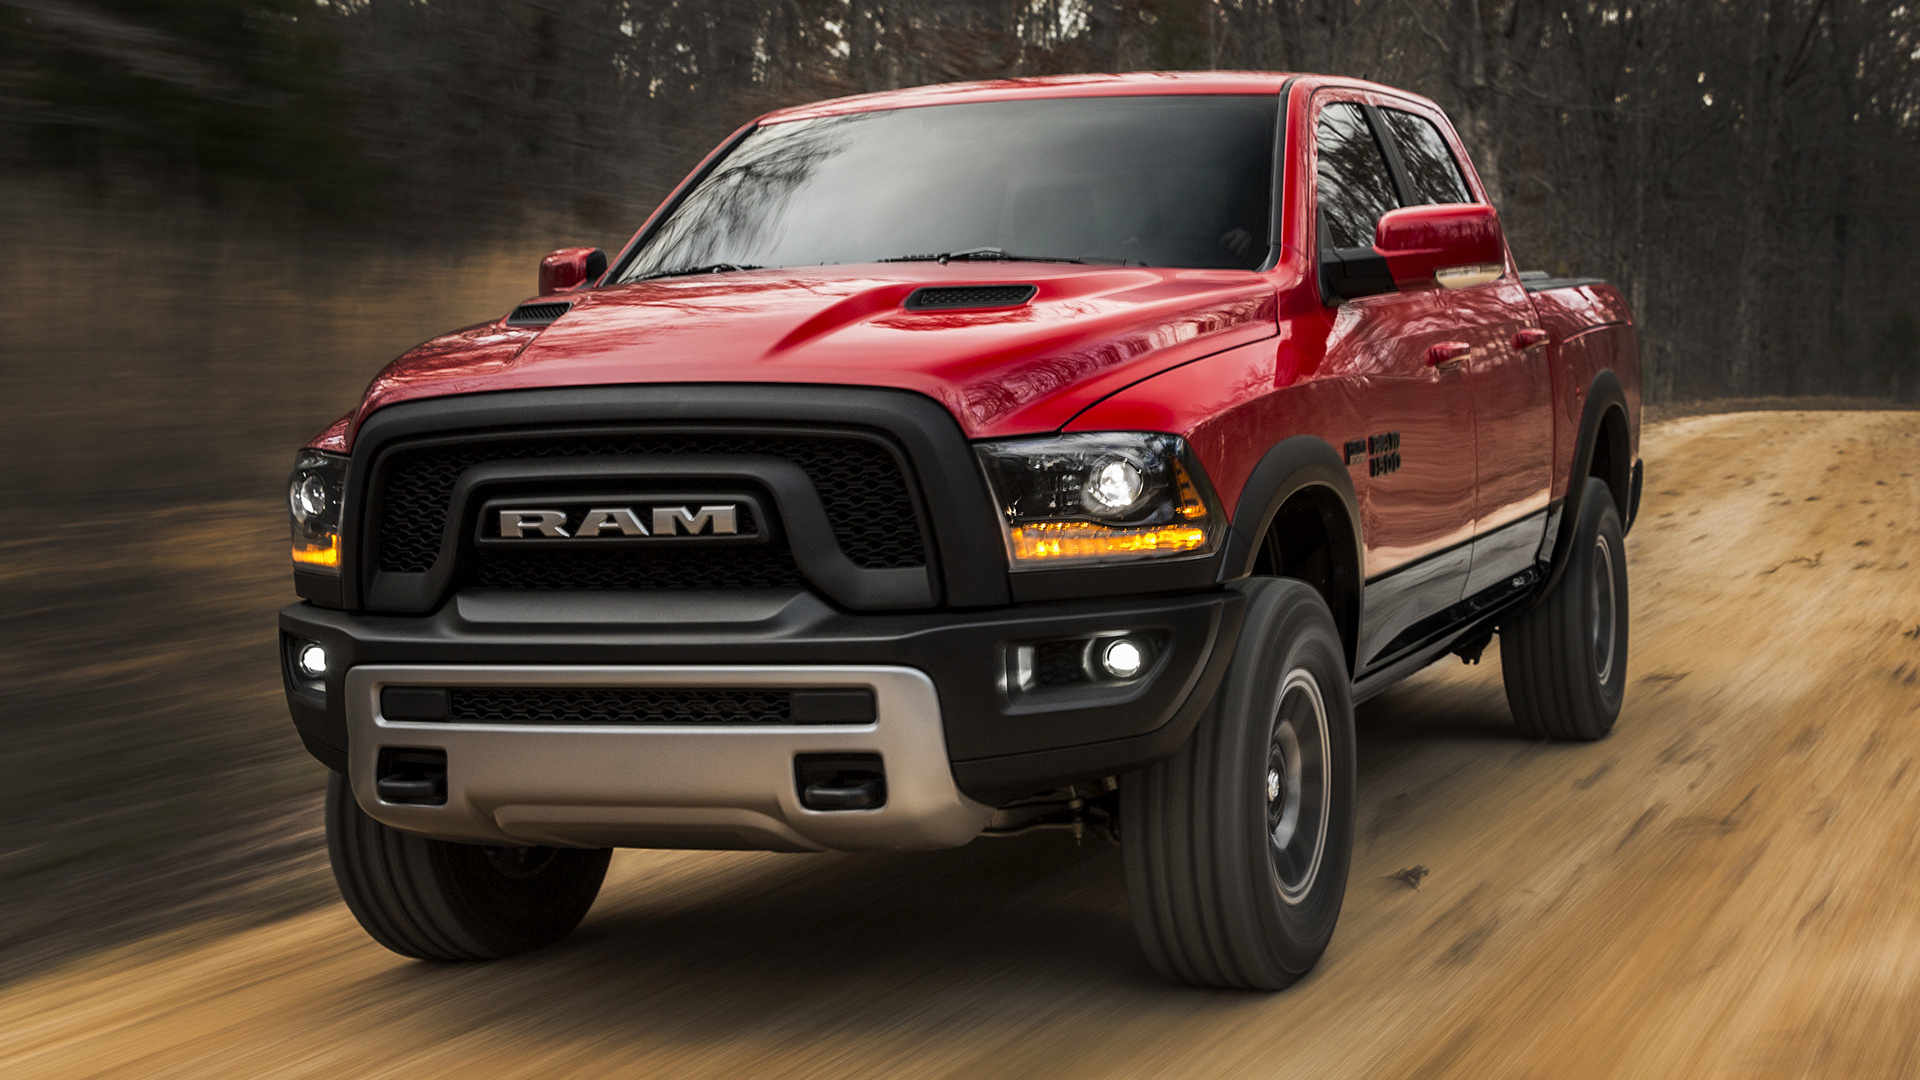 Ram 1500 Rebel Crew Cab 2015 Wallpapers And Hd Images